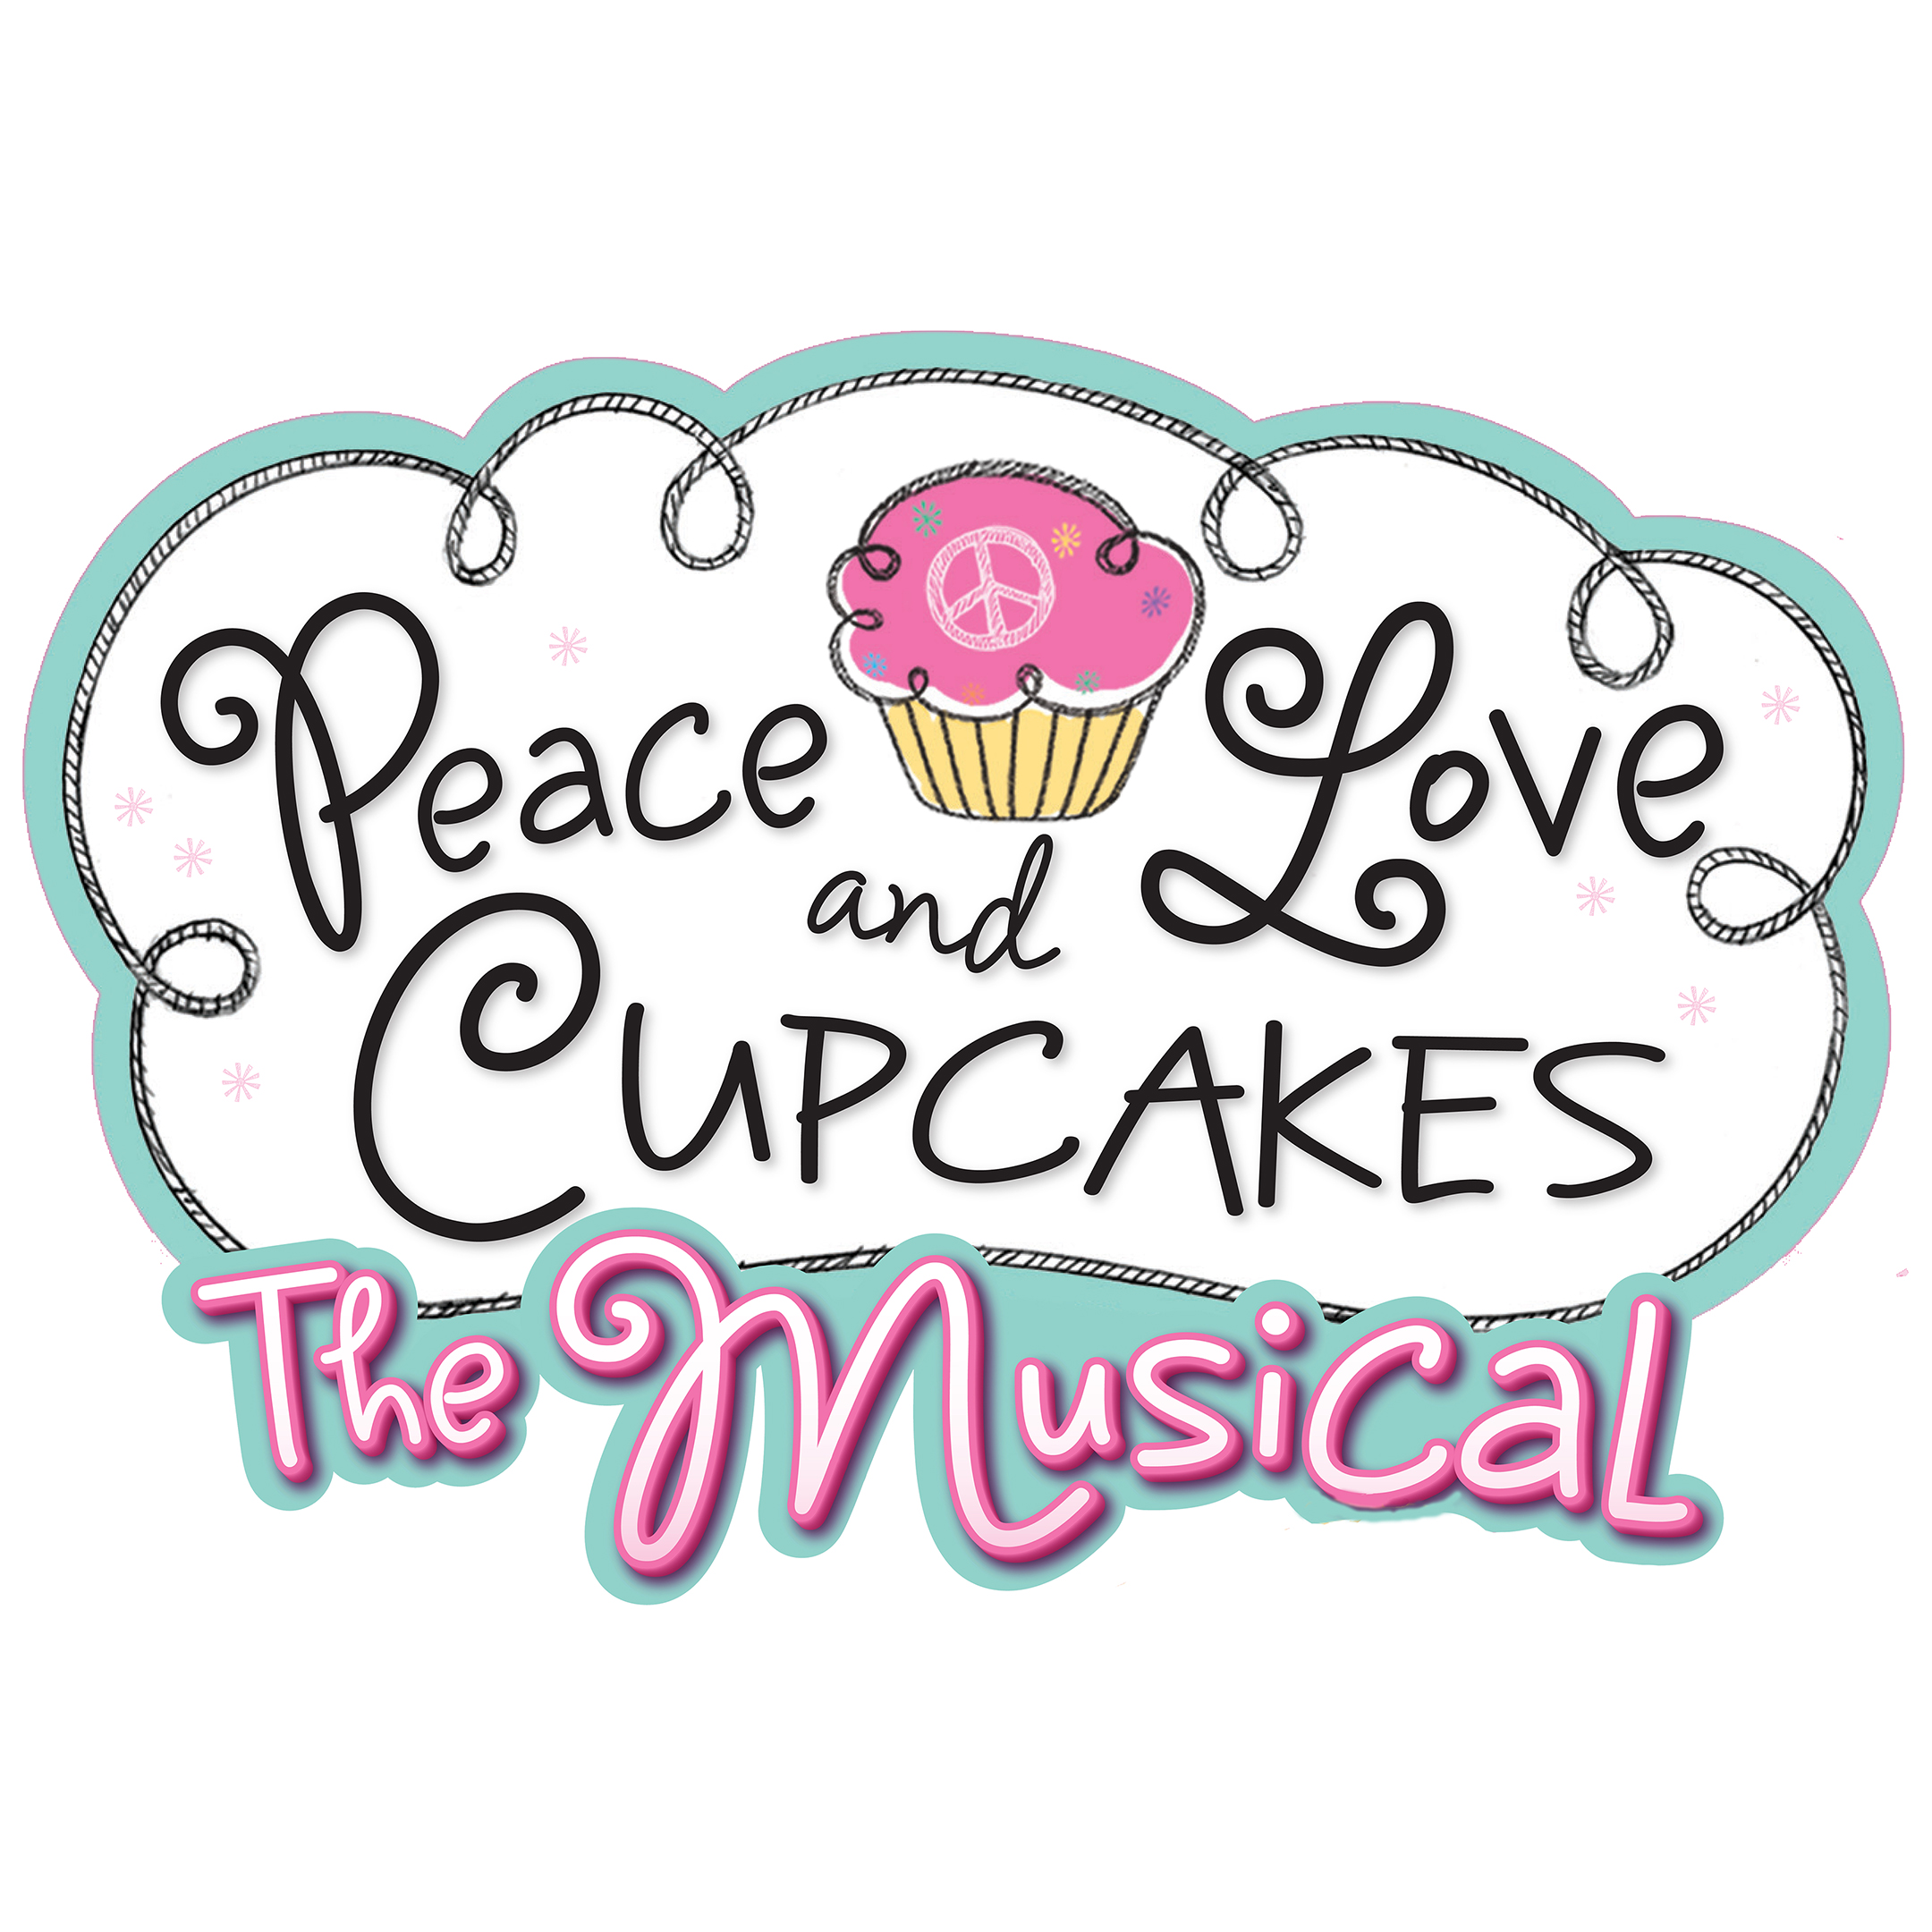 Peace, Love, and Cupcakes: The Musical